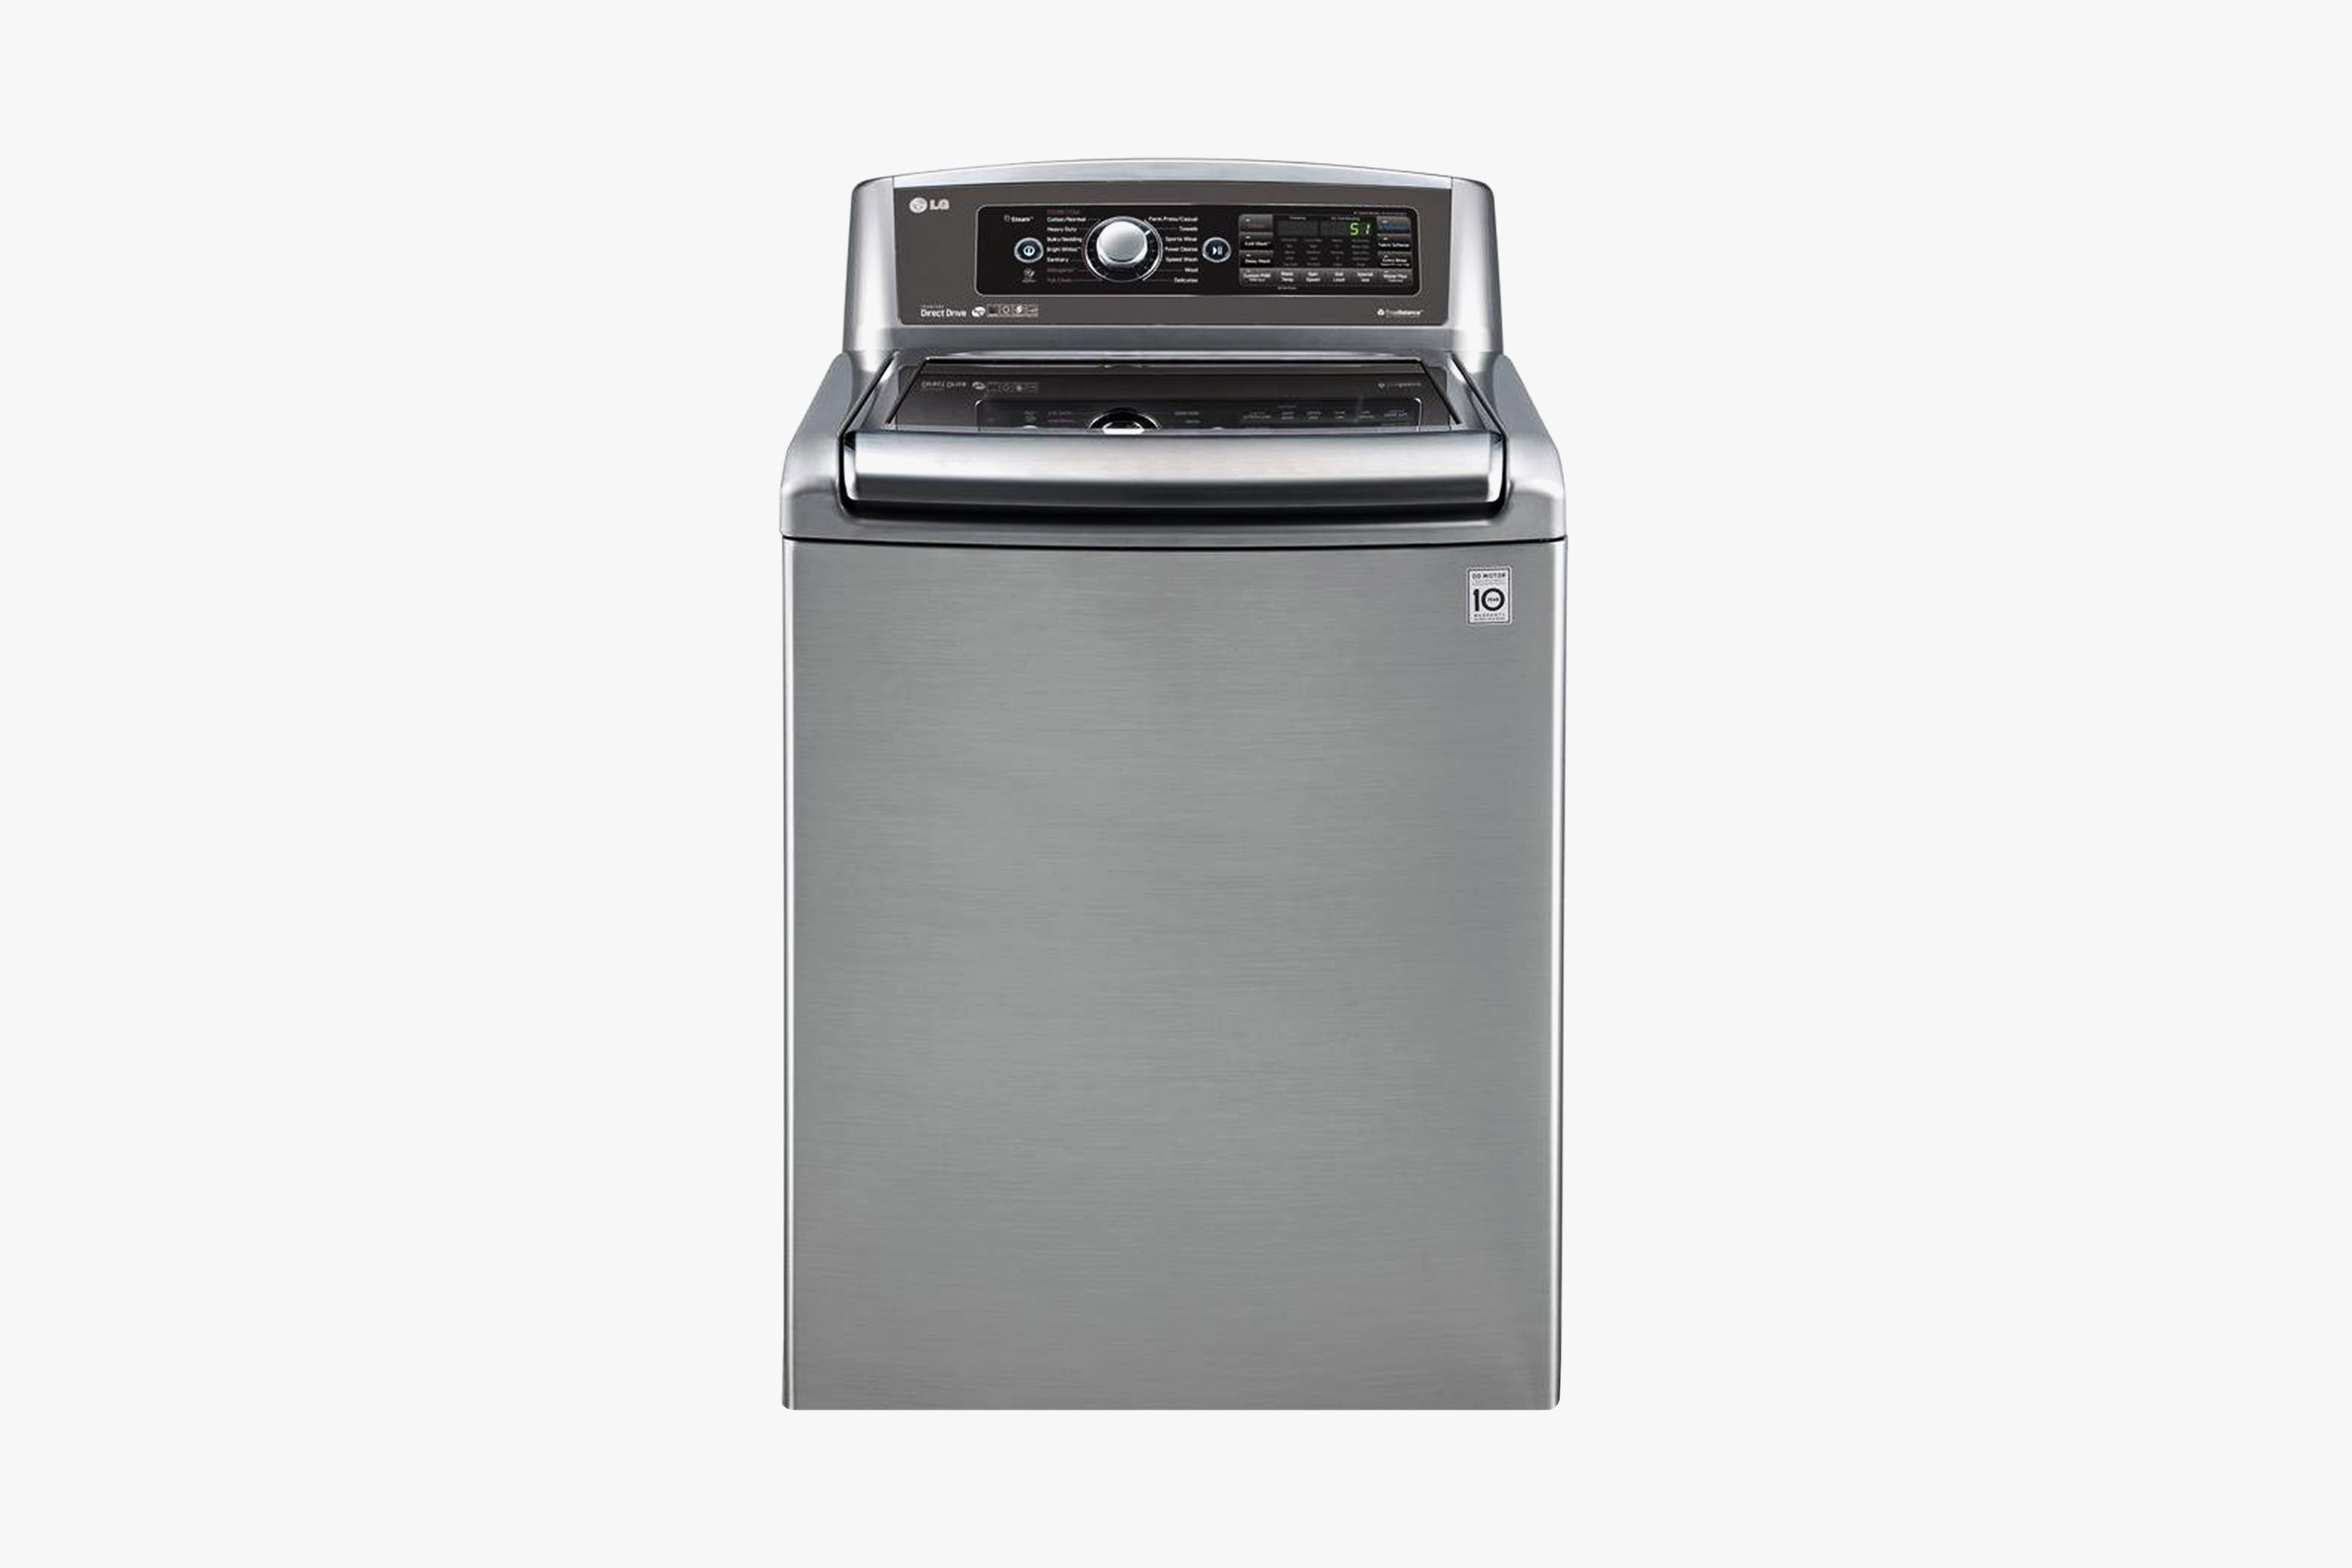 10 Best Washing Machines to Buy in 2019 - Top Rated ...